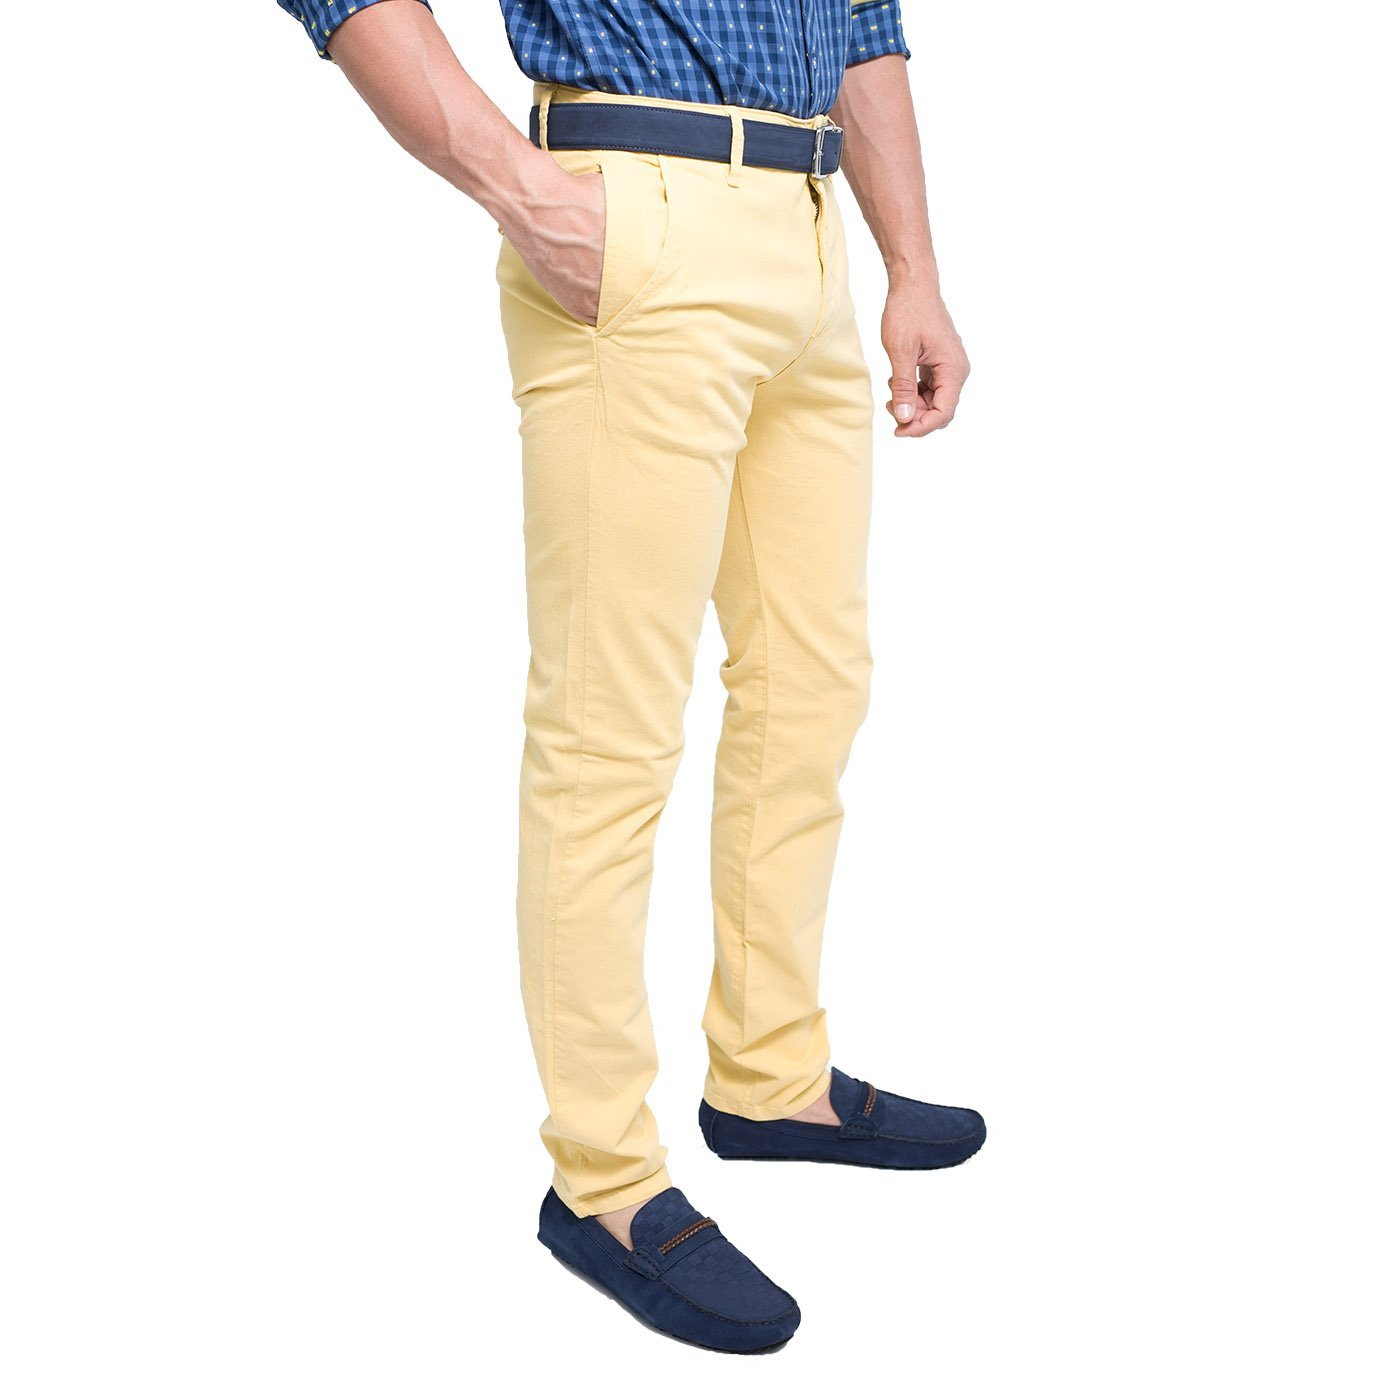 PANTALON DRYL DOBLE BOLSILLO BANANA